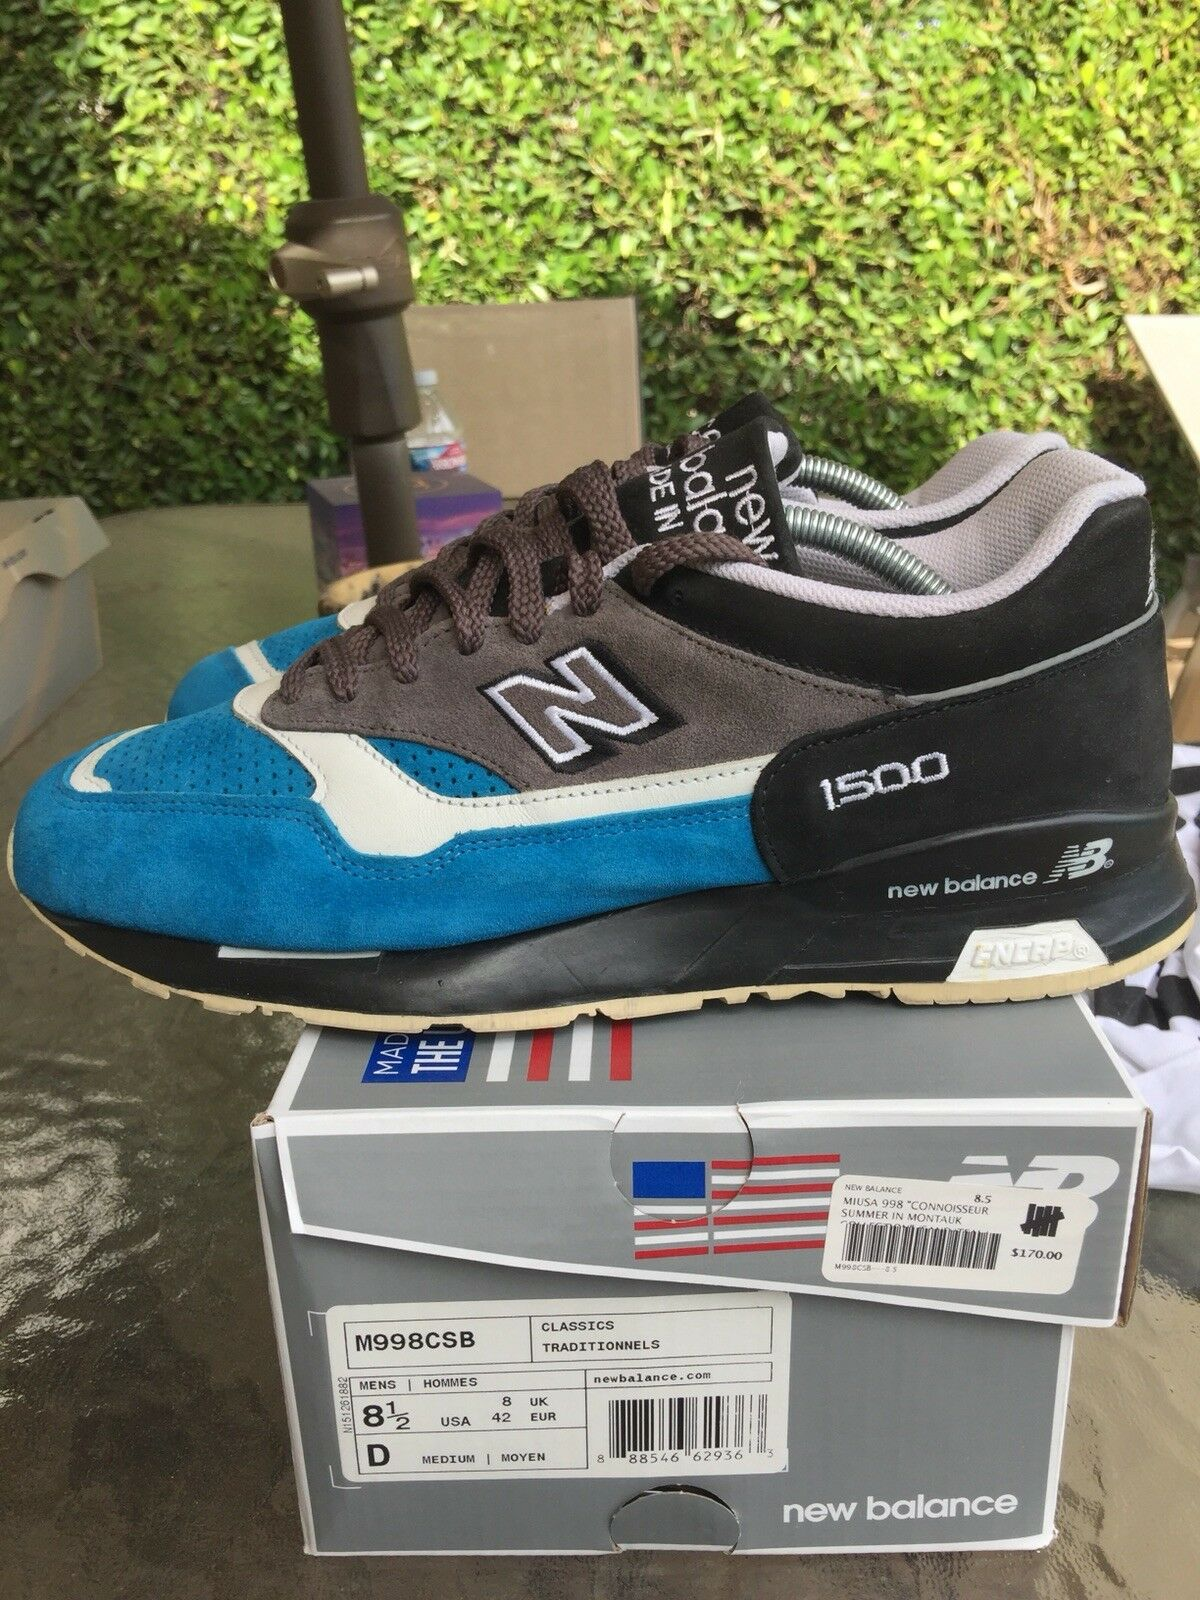 New Balance 1500 WBB Provider Sz 9 US Made In England bluee Suede Rare